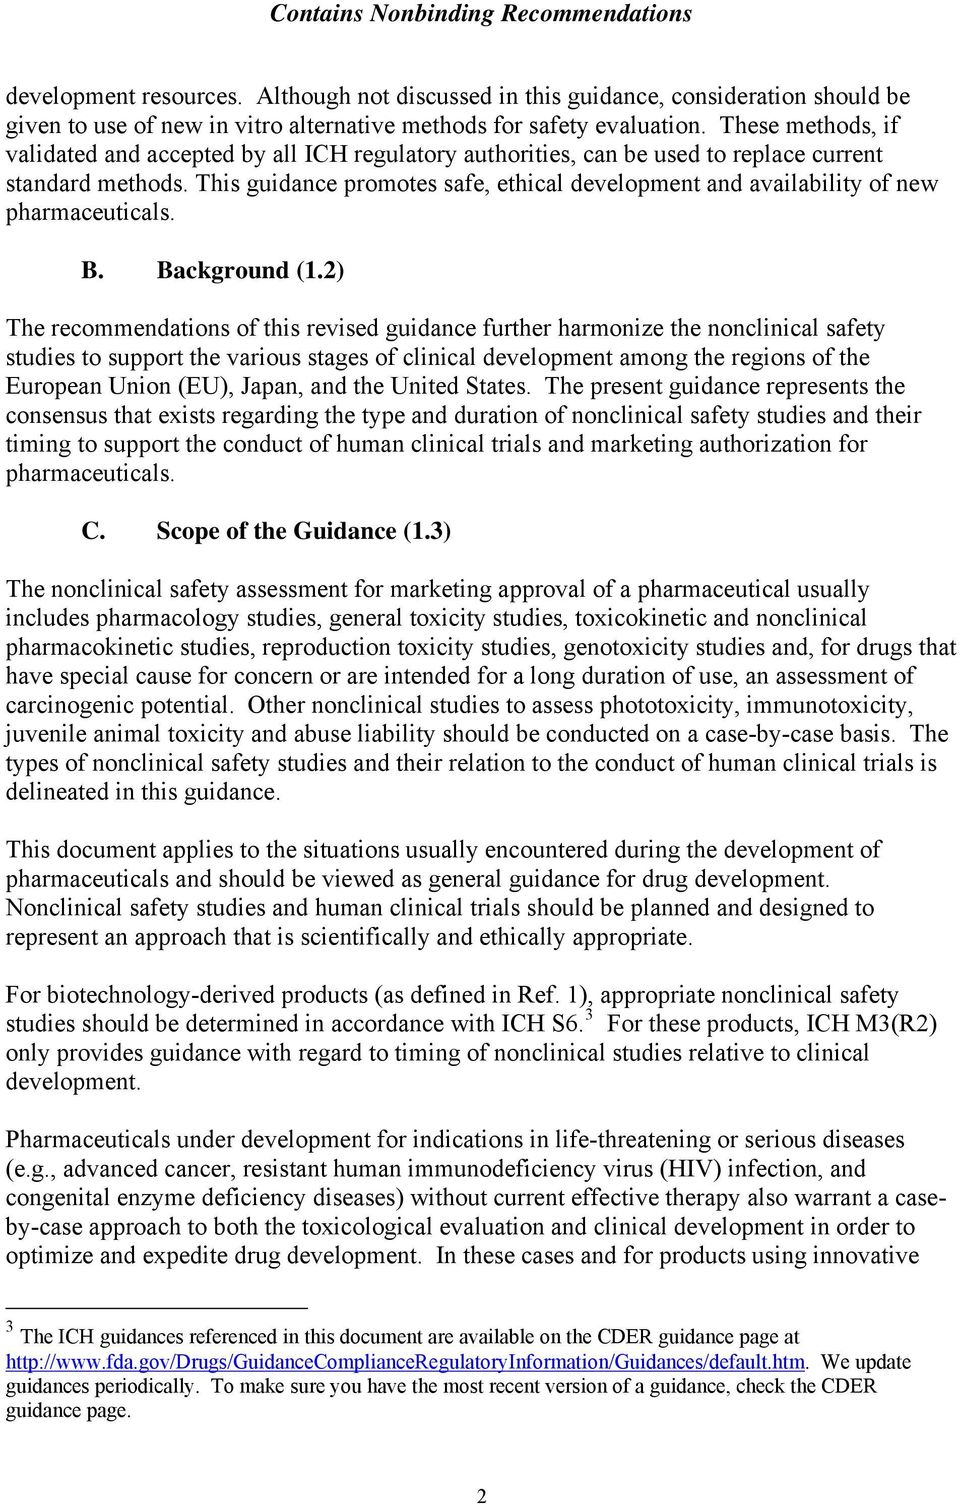 This guidance promotes safe, ethical development and availability of new pharmaceuticals. B. Background (1.